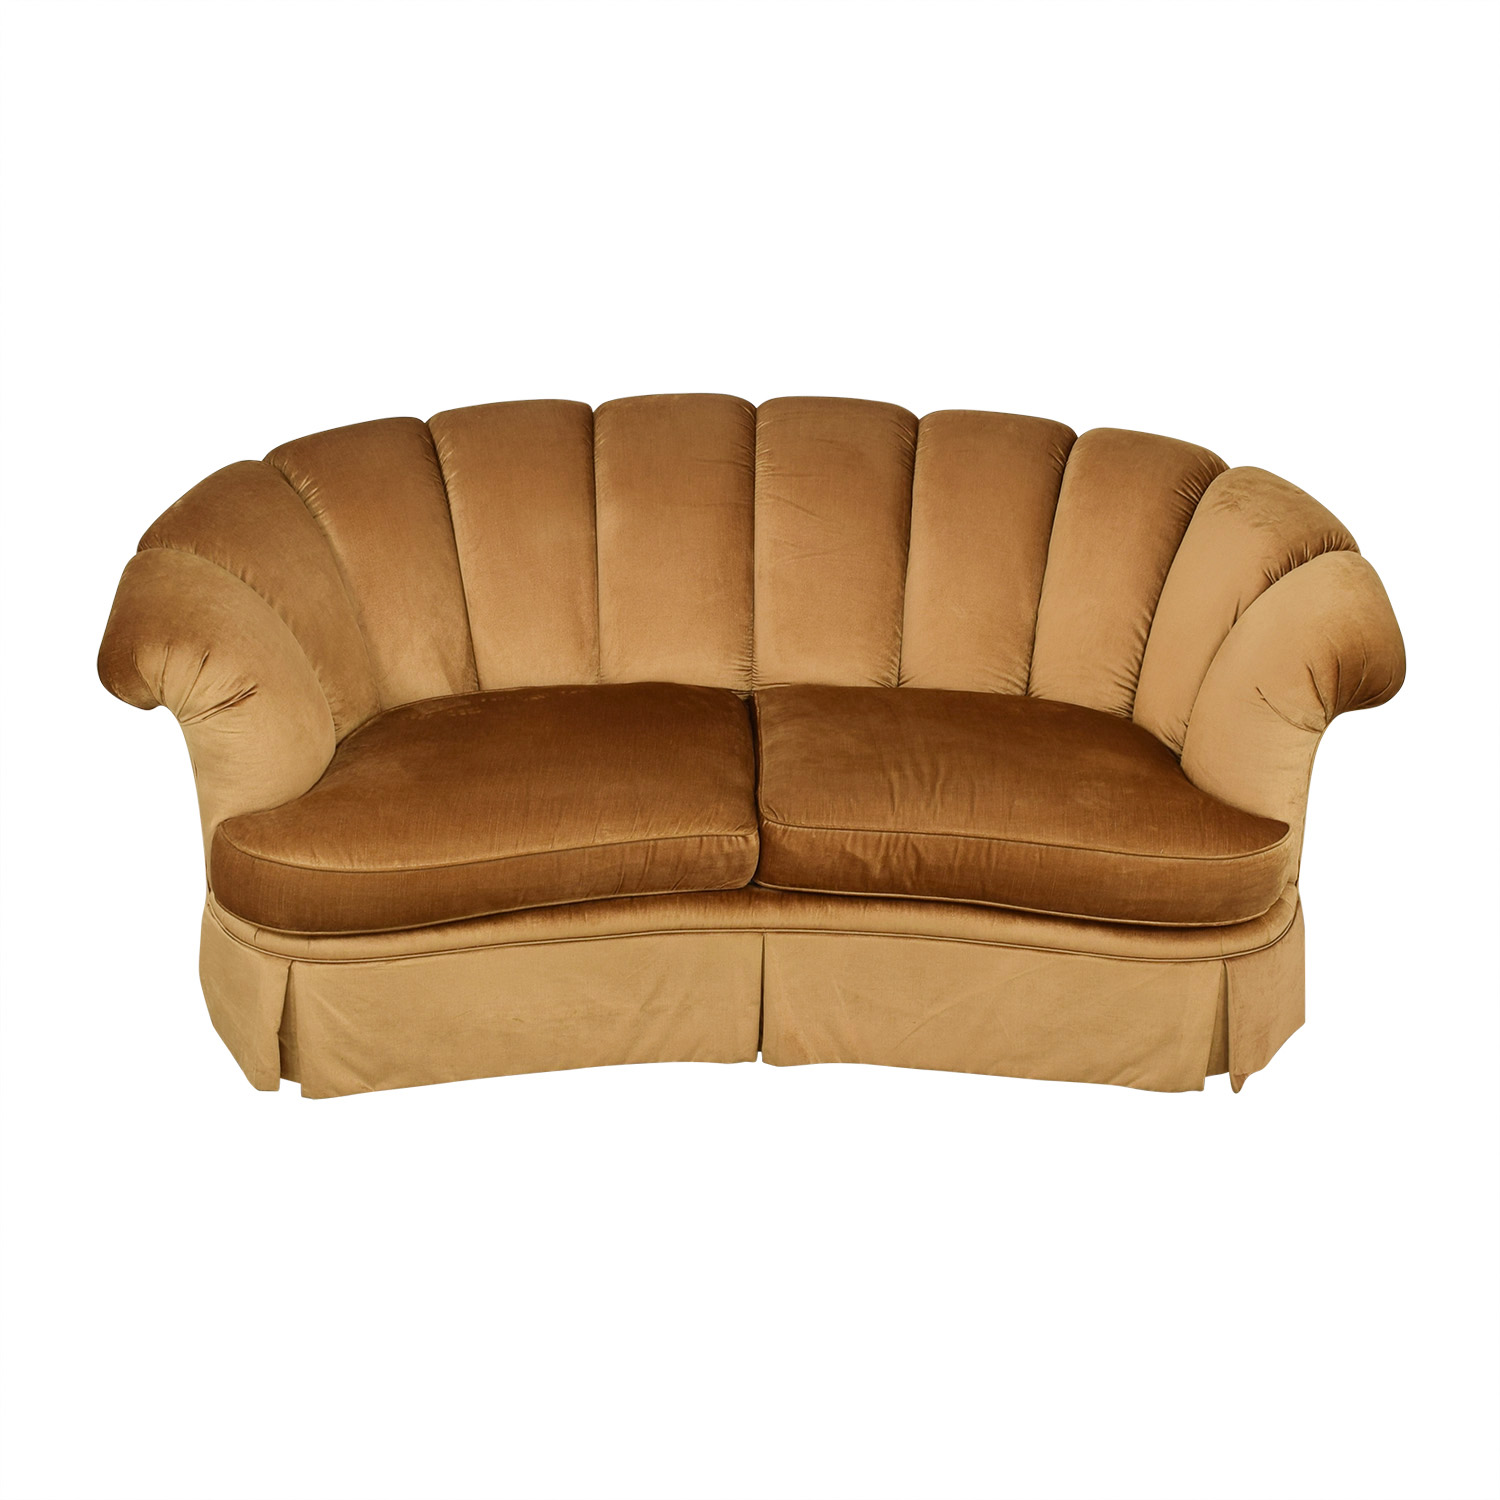 Highland House Furniture Highland House Scalloped Sofa coupon